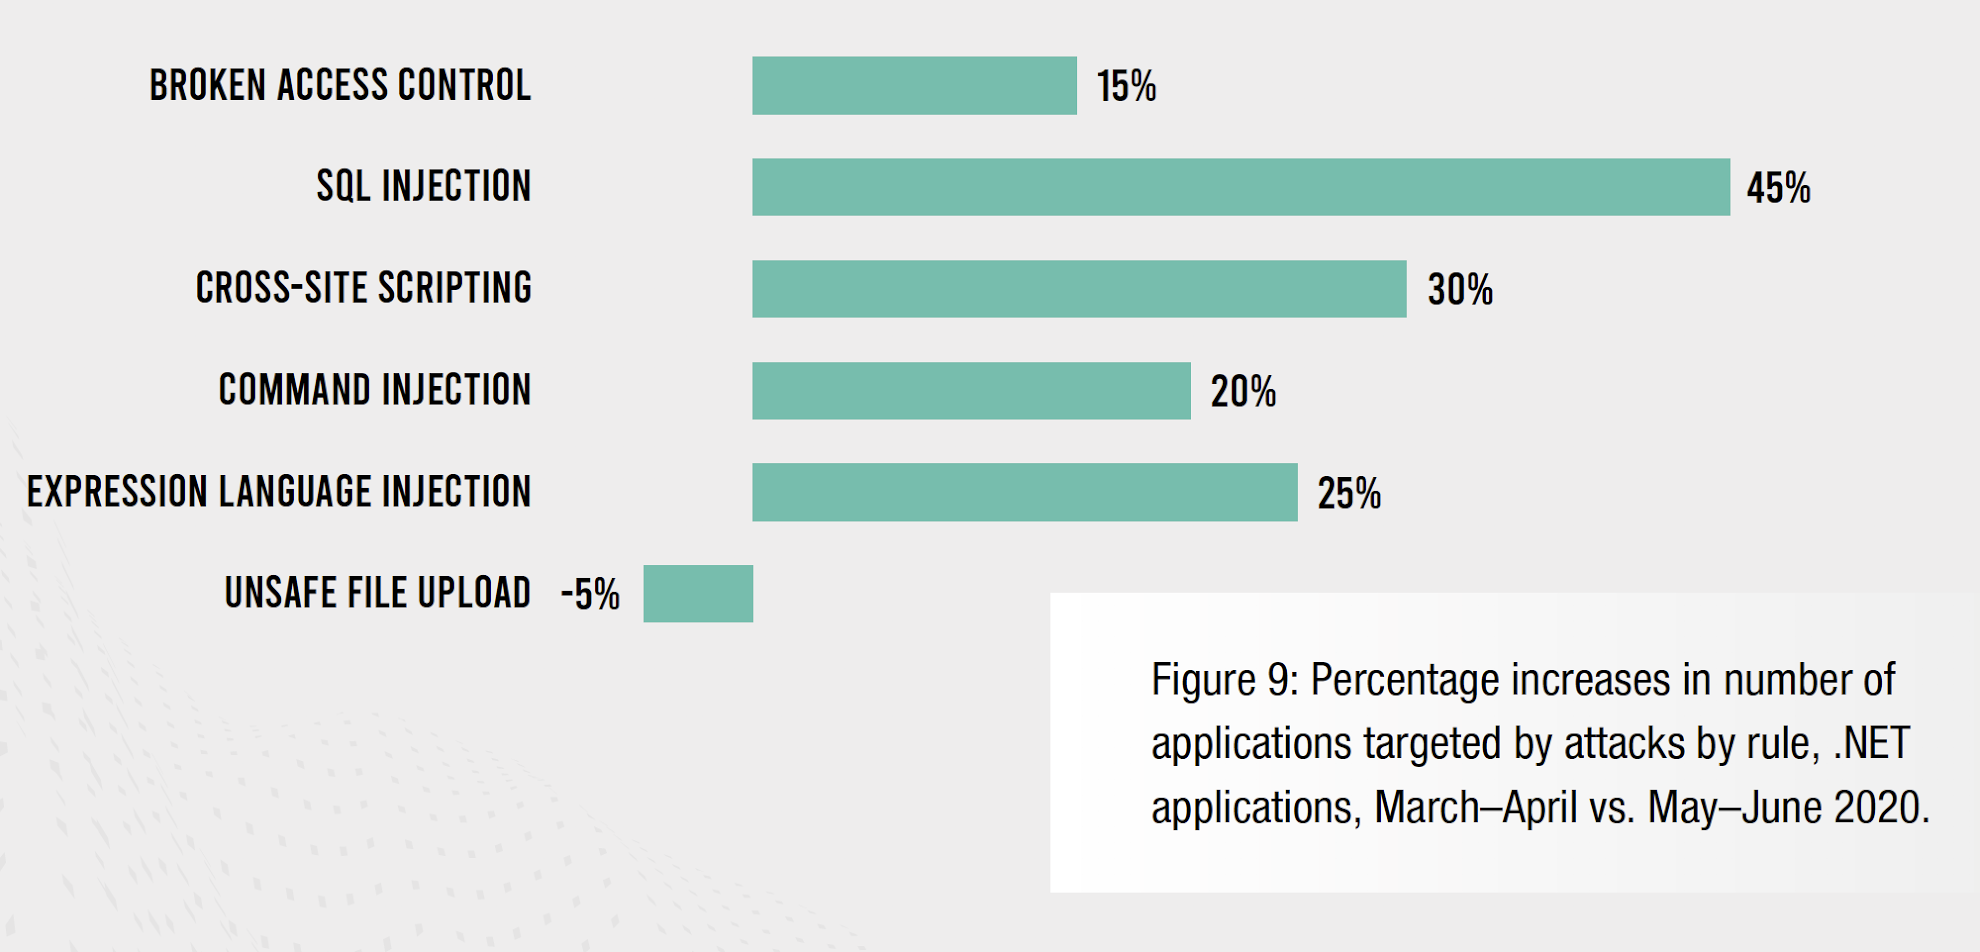 Figure 9: Percentage increases in the number of applications targeted by attacks by rule, .NET applications, March–April vs. May–June 2020.